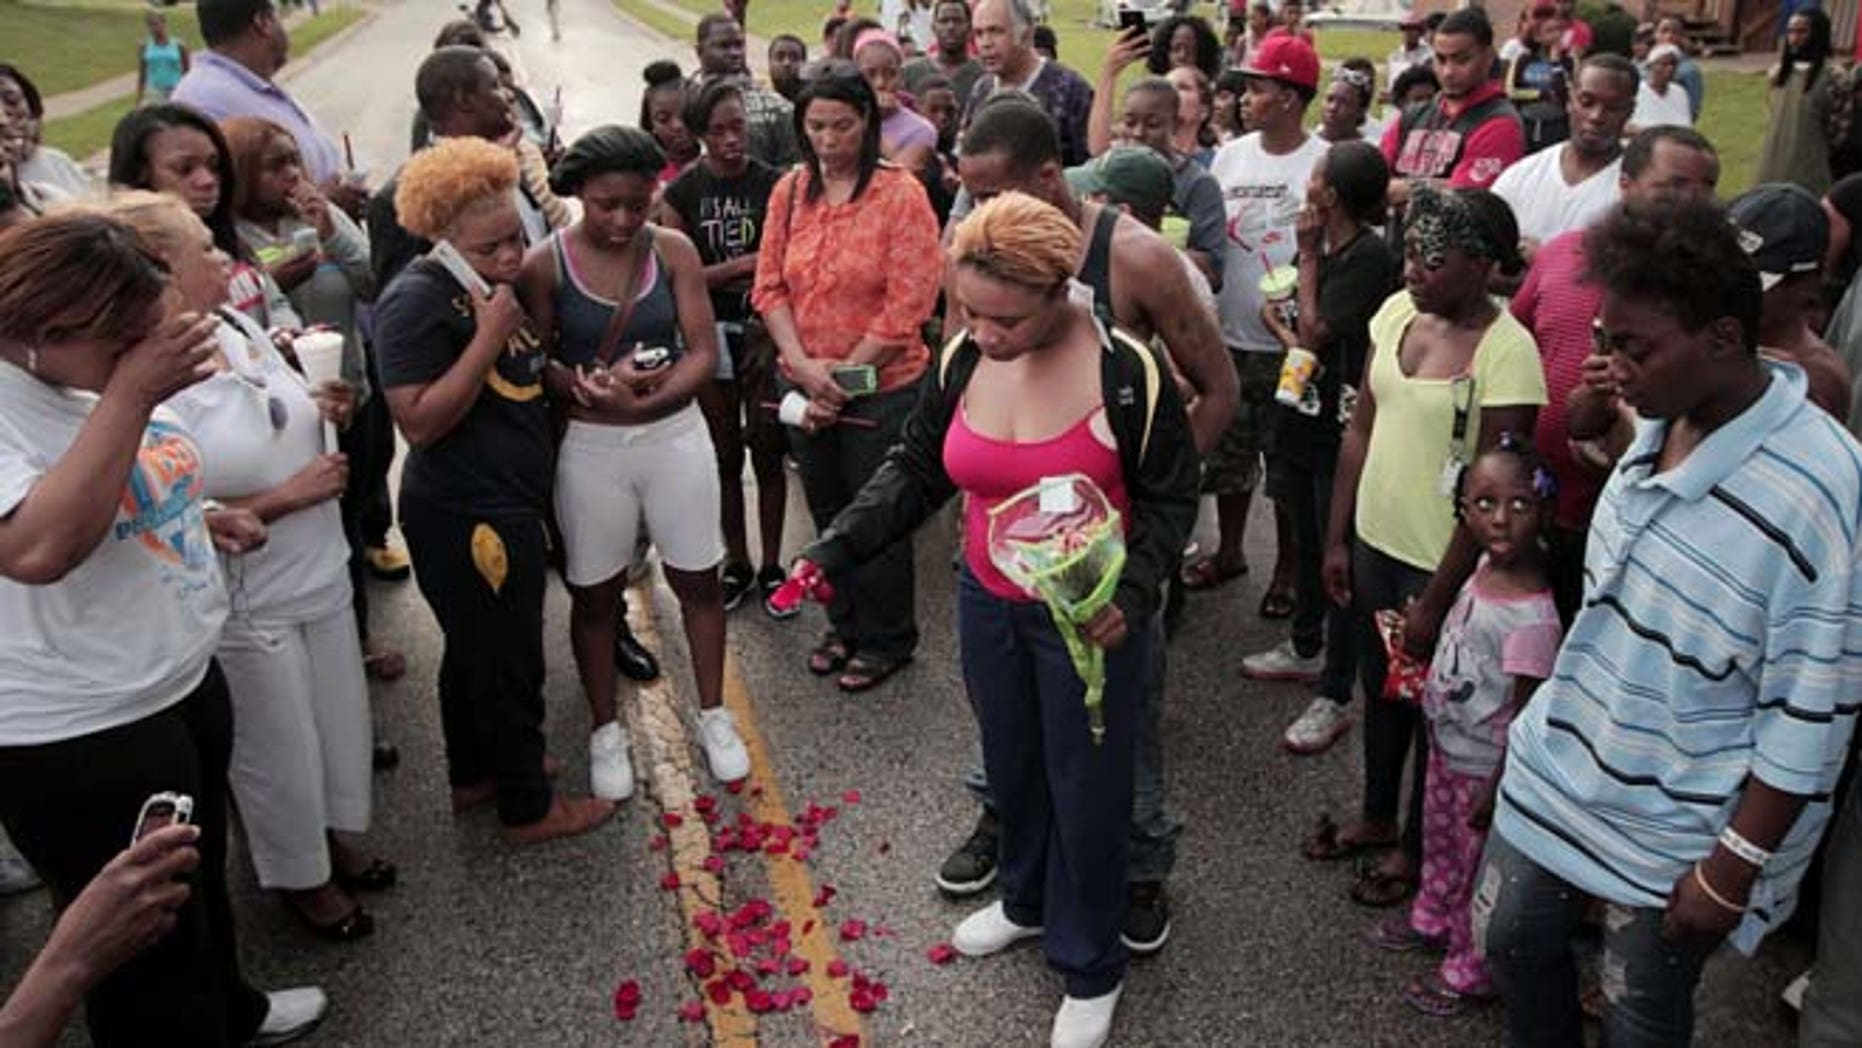 Aug. 9, 2014: Lesley McSpadden, center, drops rose petals on the blood stains from her 18-year-old son Michael Brown who was shot and killed by police in the middle of the street in Ferguson, Mo., near St. Louis. (AP/St. Louis Post-Dispatch, Huy Mach)